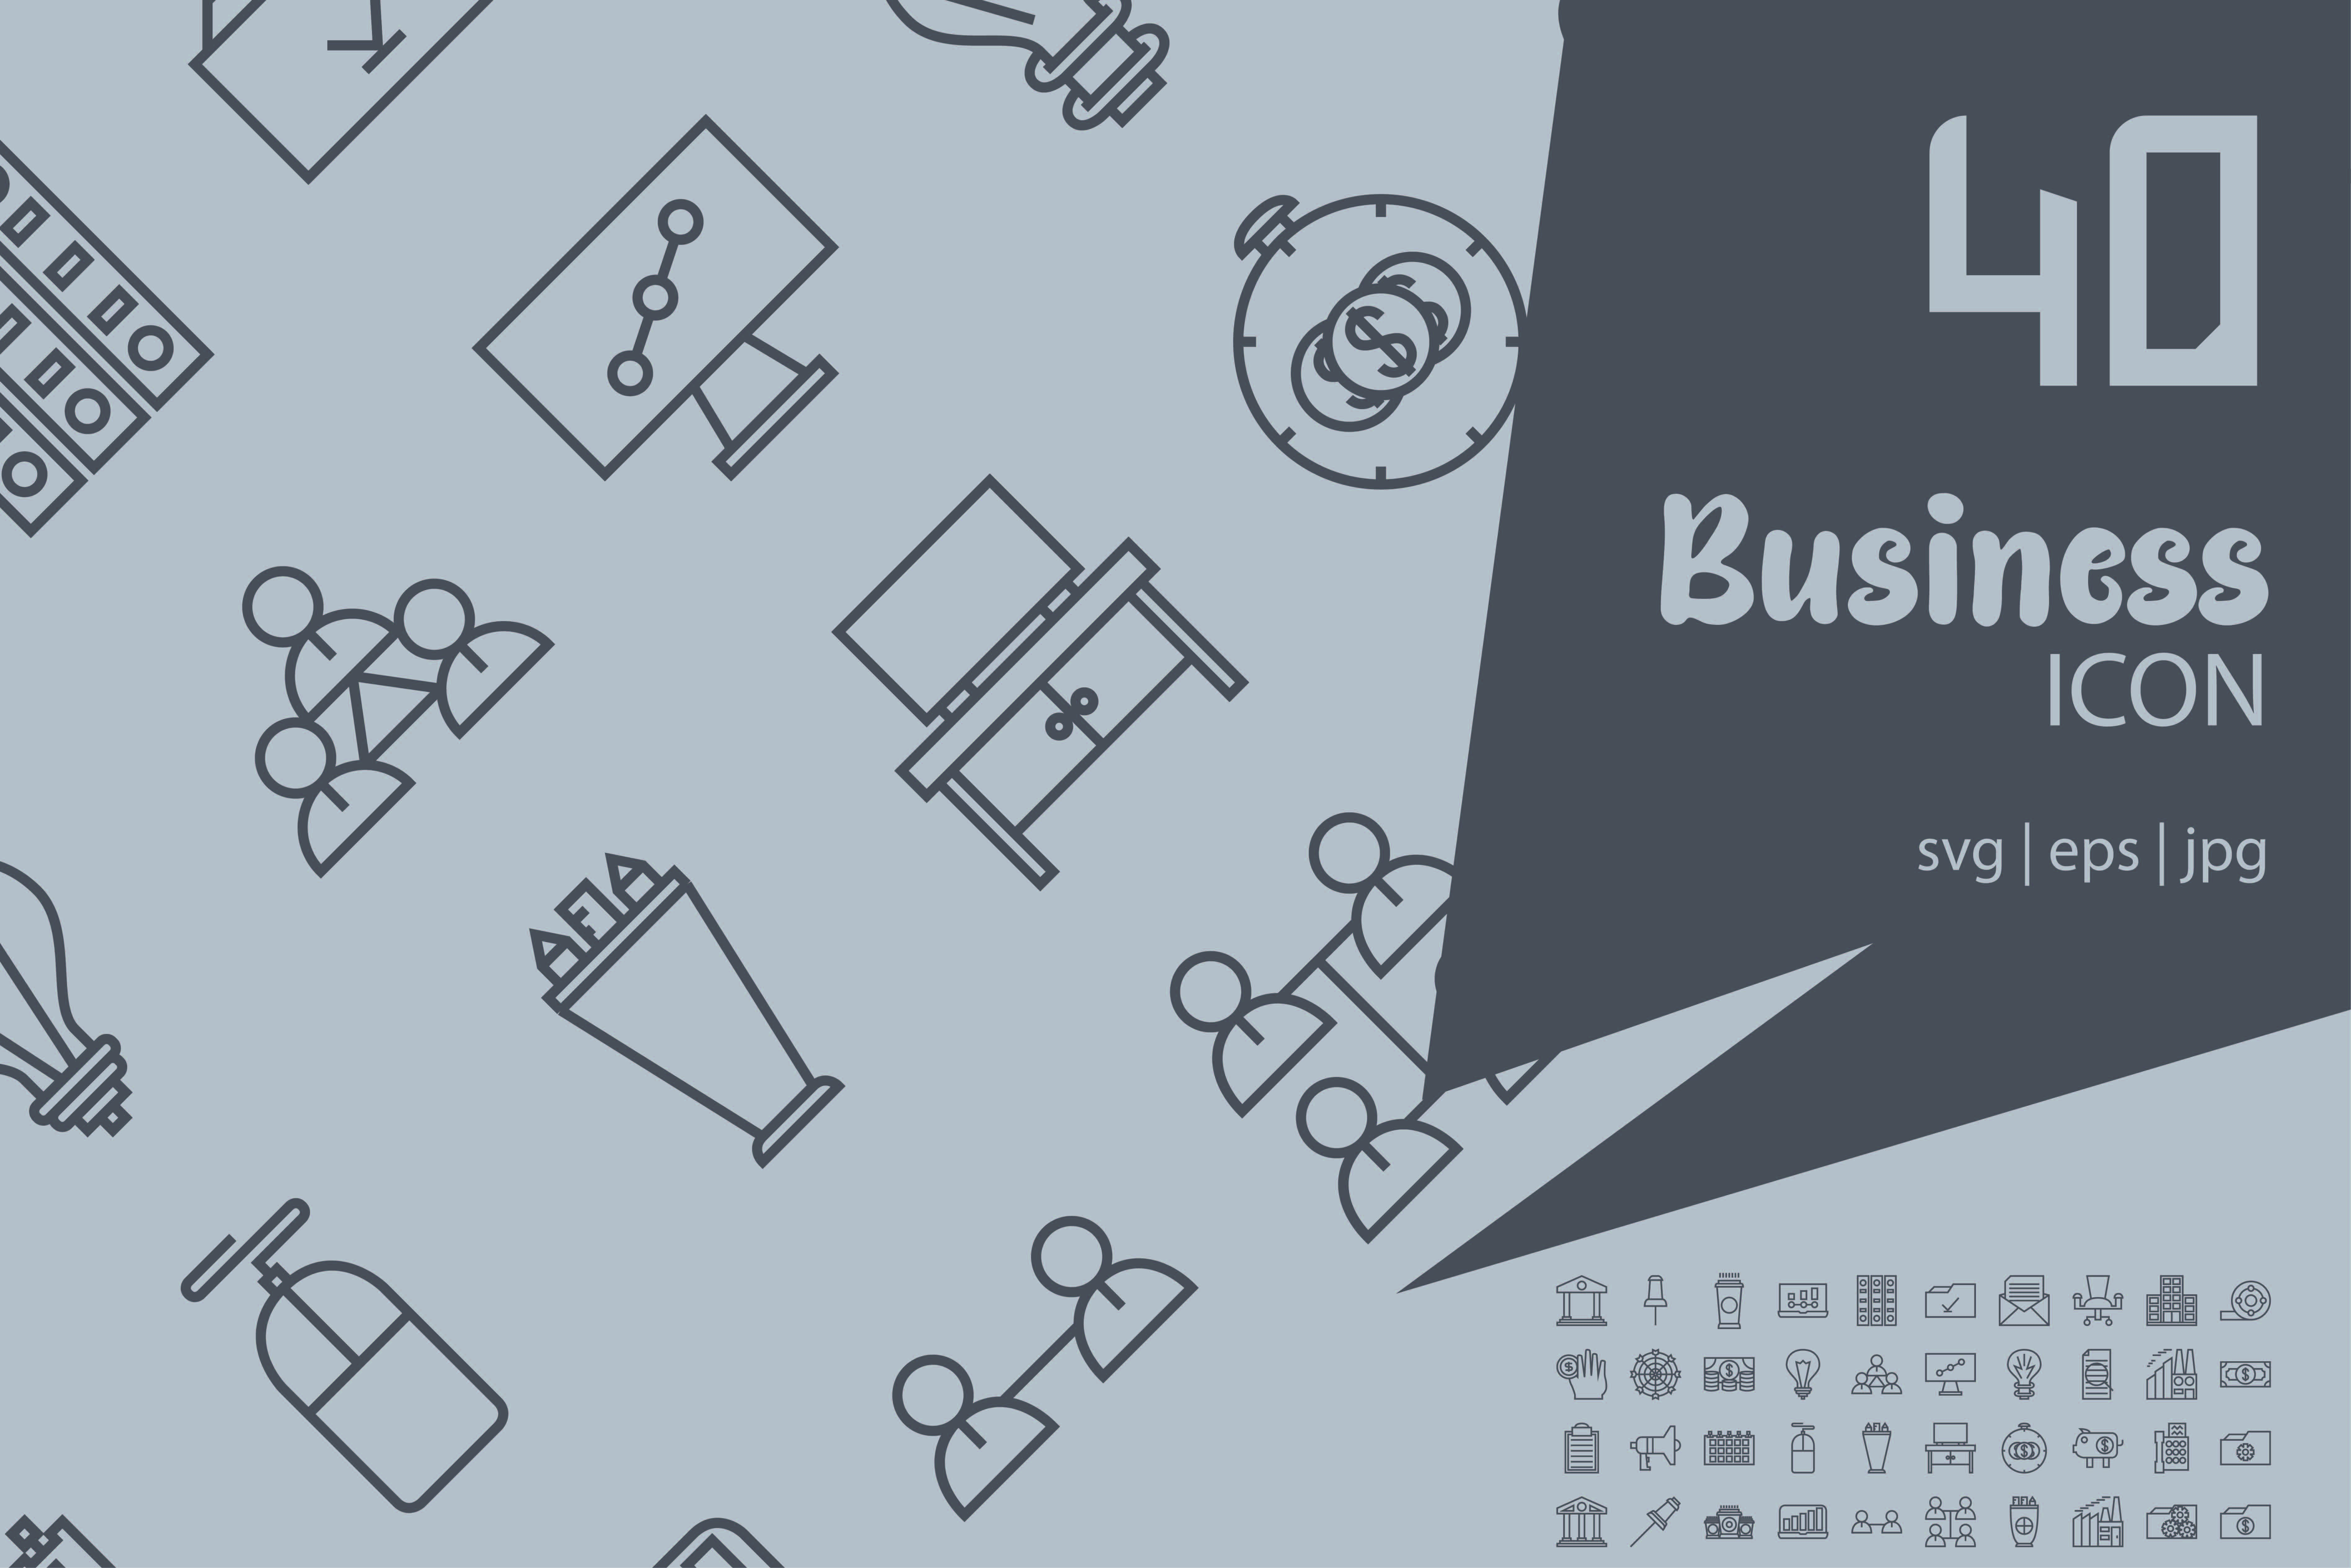 Download Free Business Graphic By Astuti Julia93 Gmail Com Creative Fabrica for Cricut Explore, Silhouette and other cutting machines.